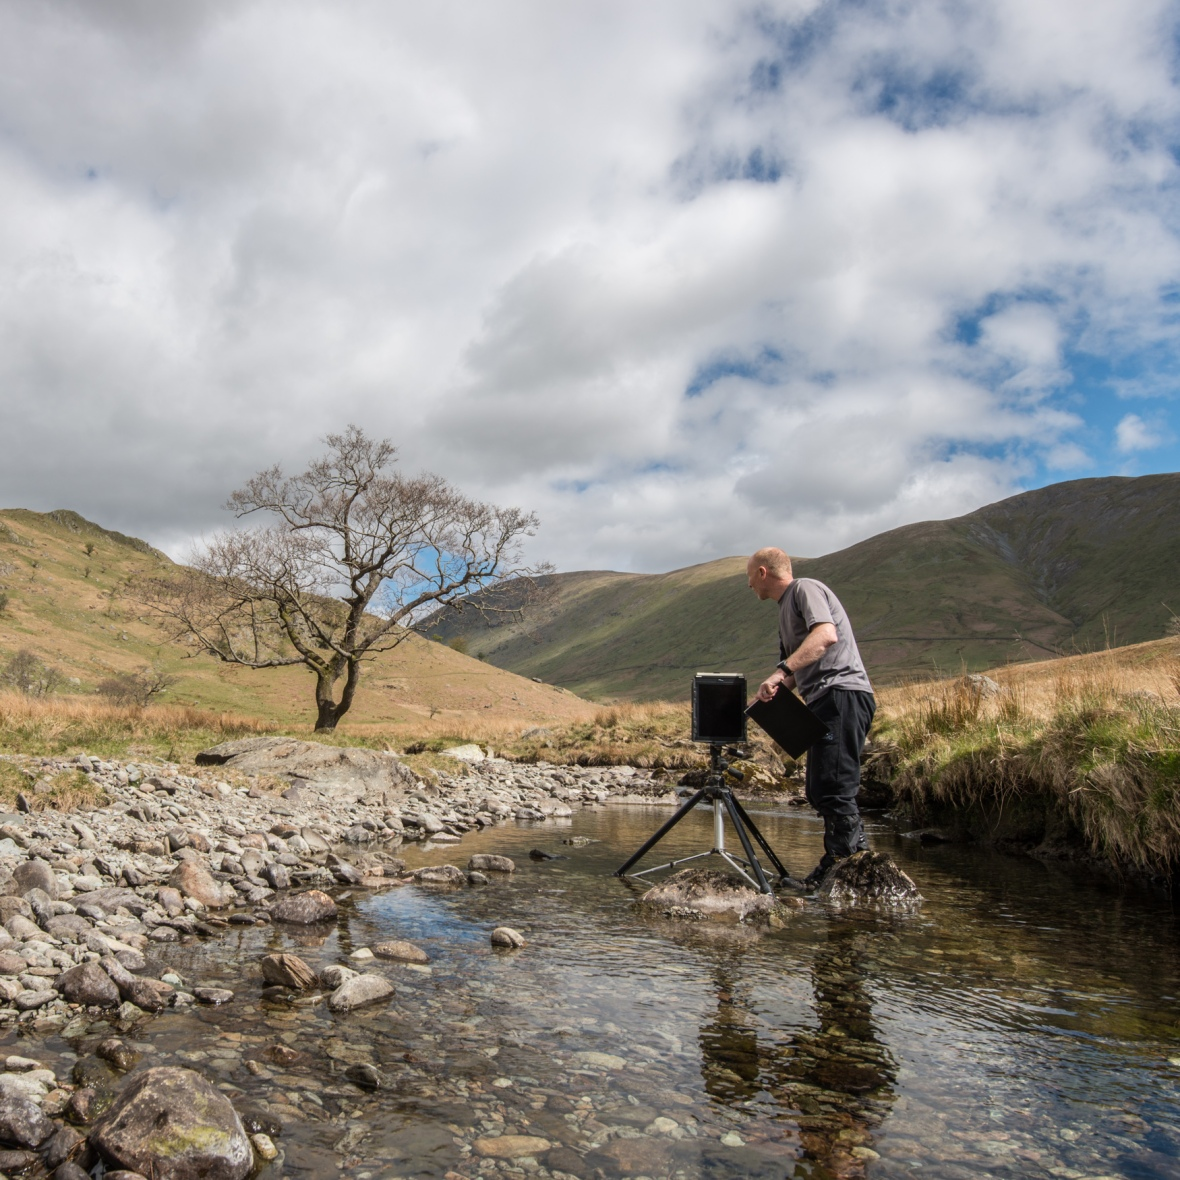 Rob Fraser with a 10x8 Ilford Titan Pinhole camera making an image of the Trout Beck Alder for The Long View